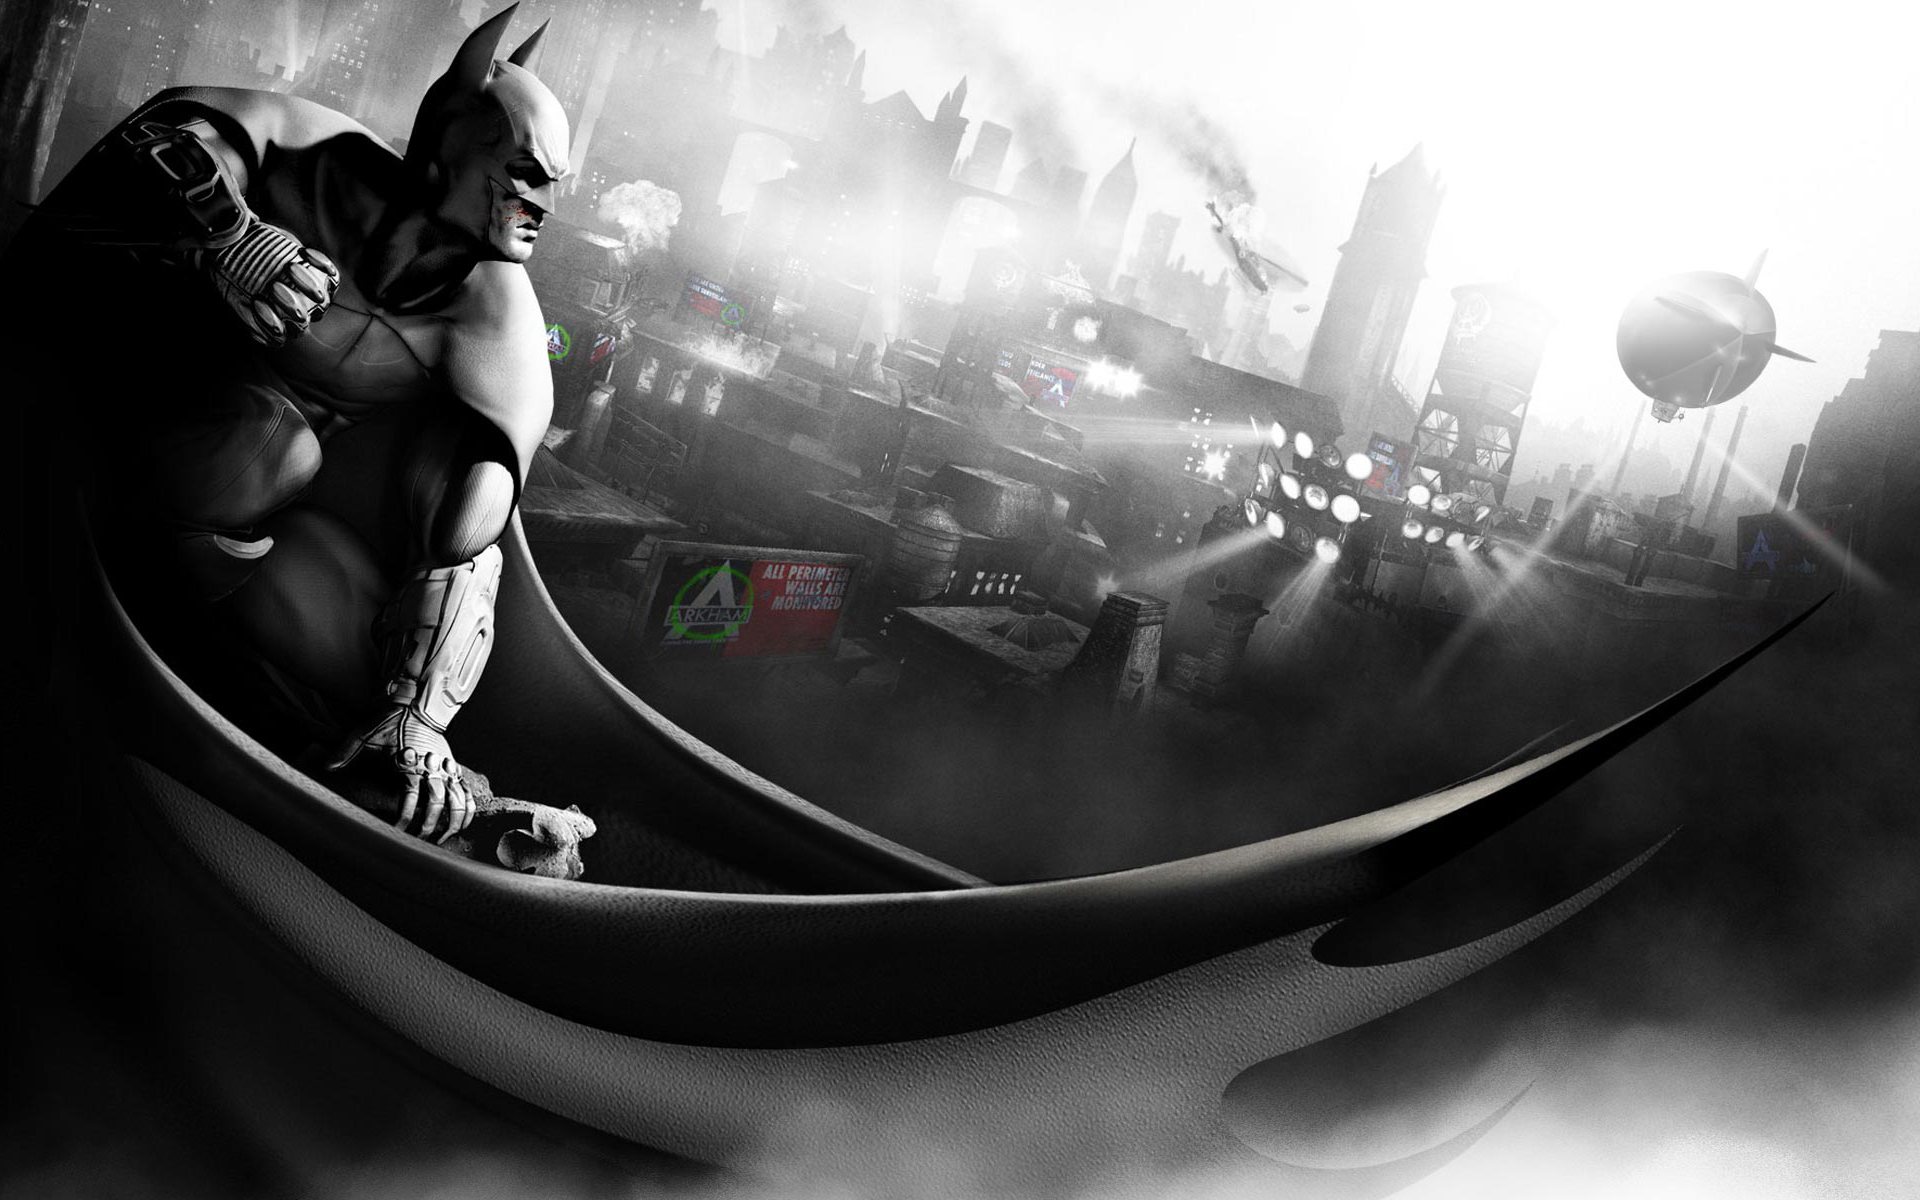 2011 Batman Arkham City Wallpapers HD Wallpapers 1920x1200